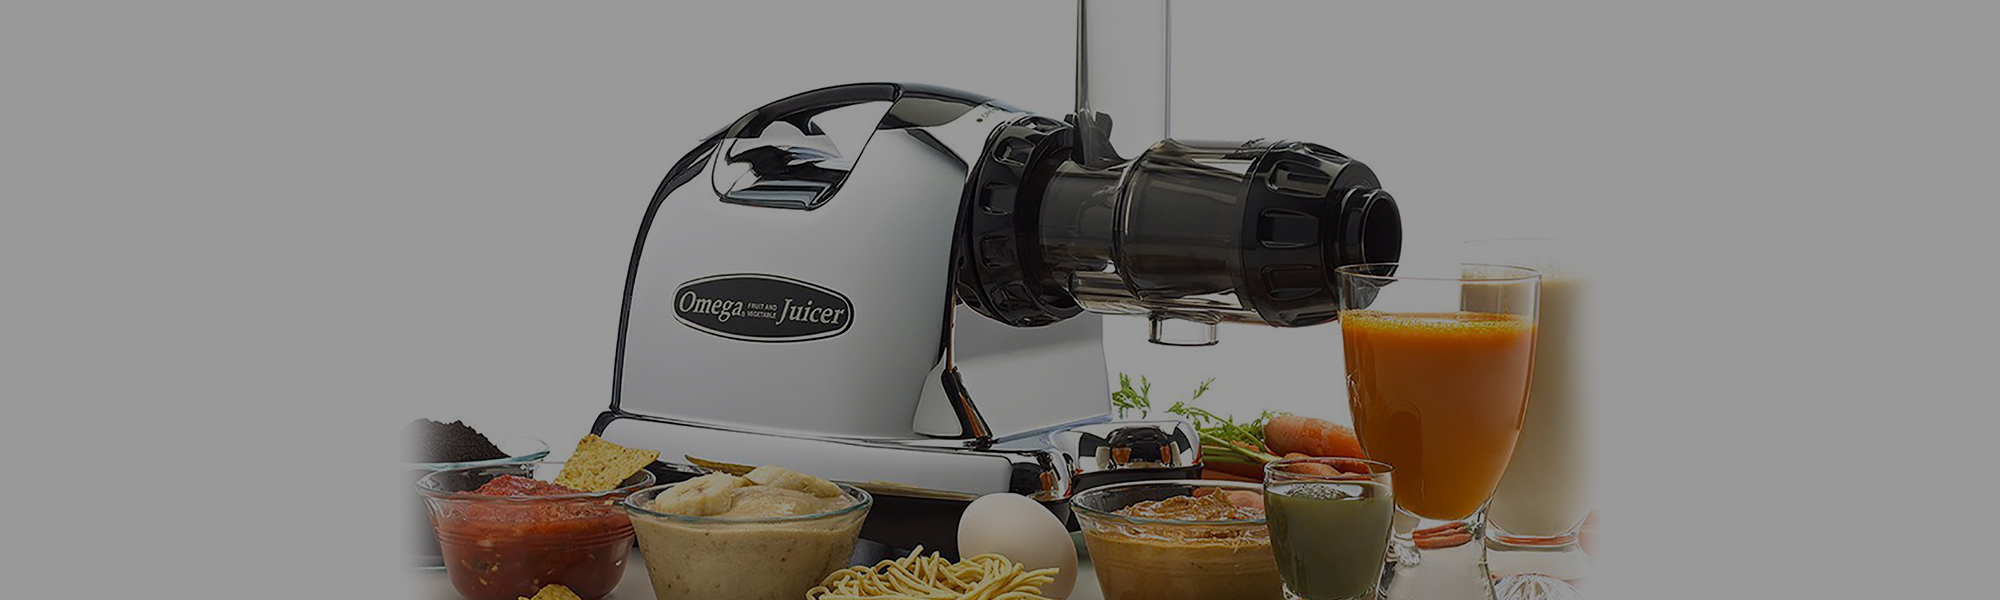 Omega J8006<br>Nutrition Centre Juicer